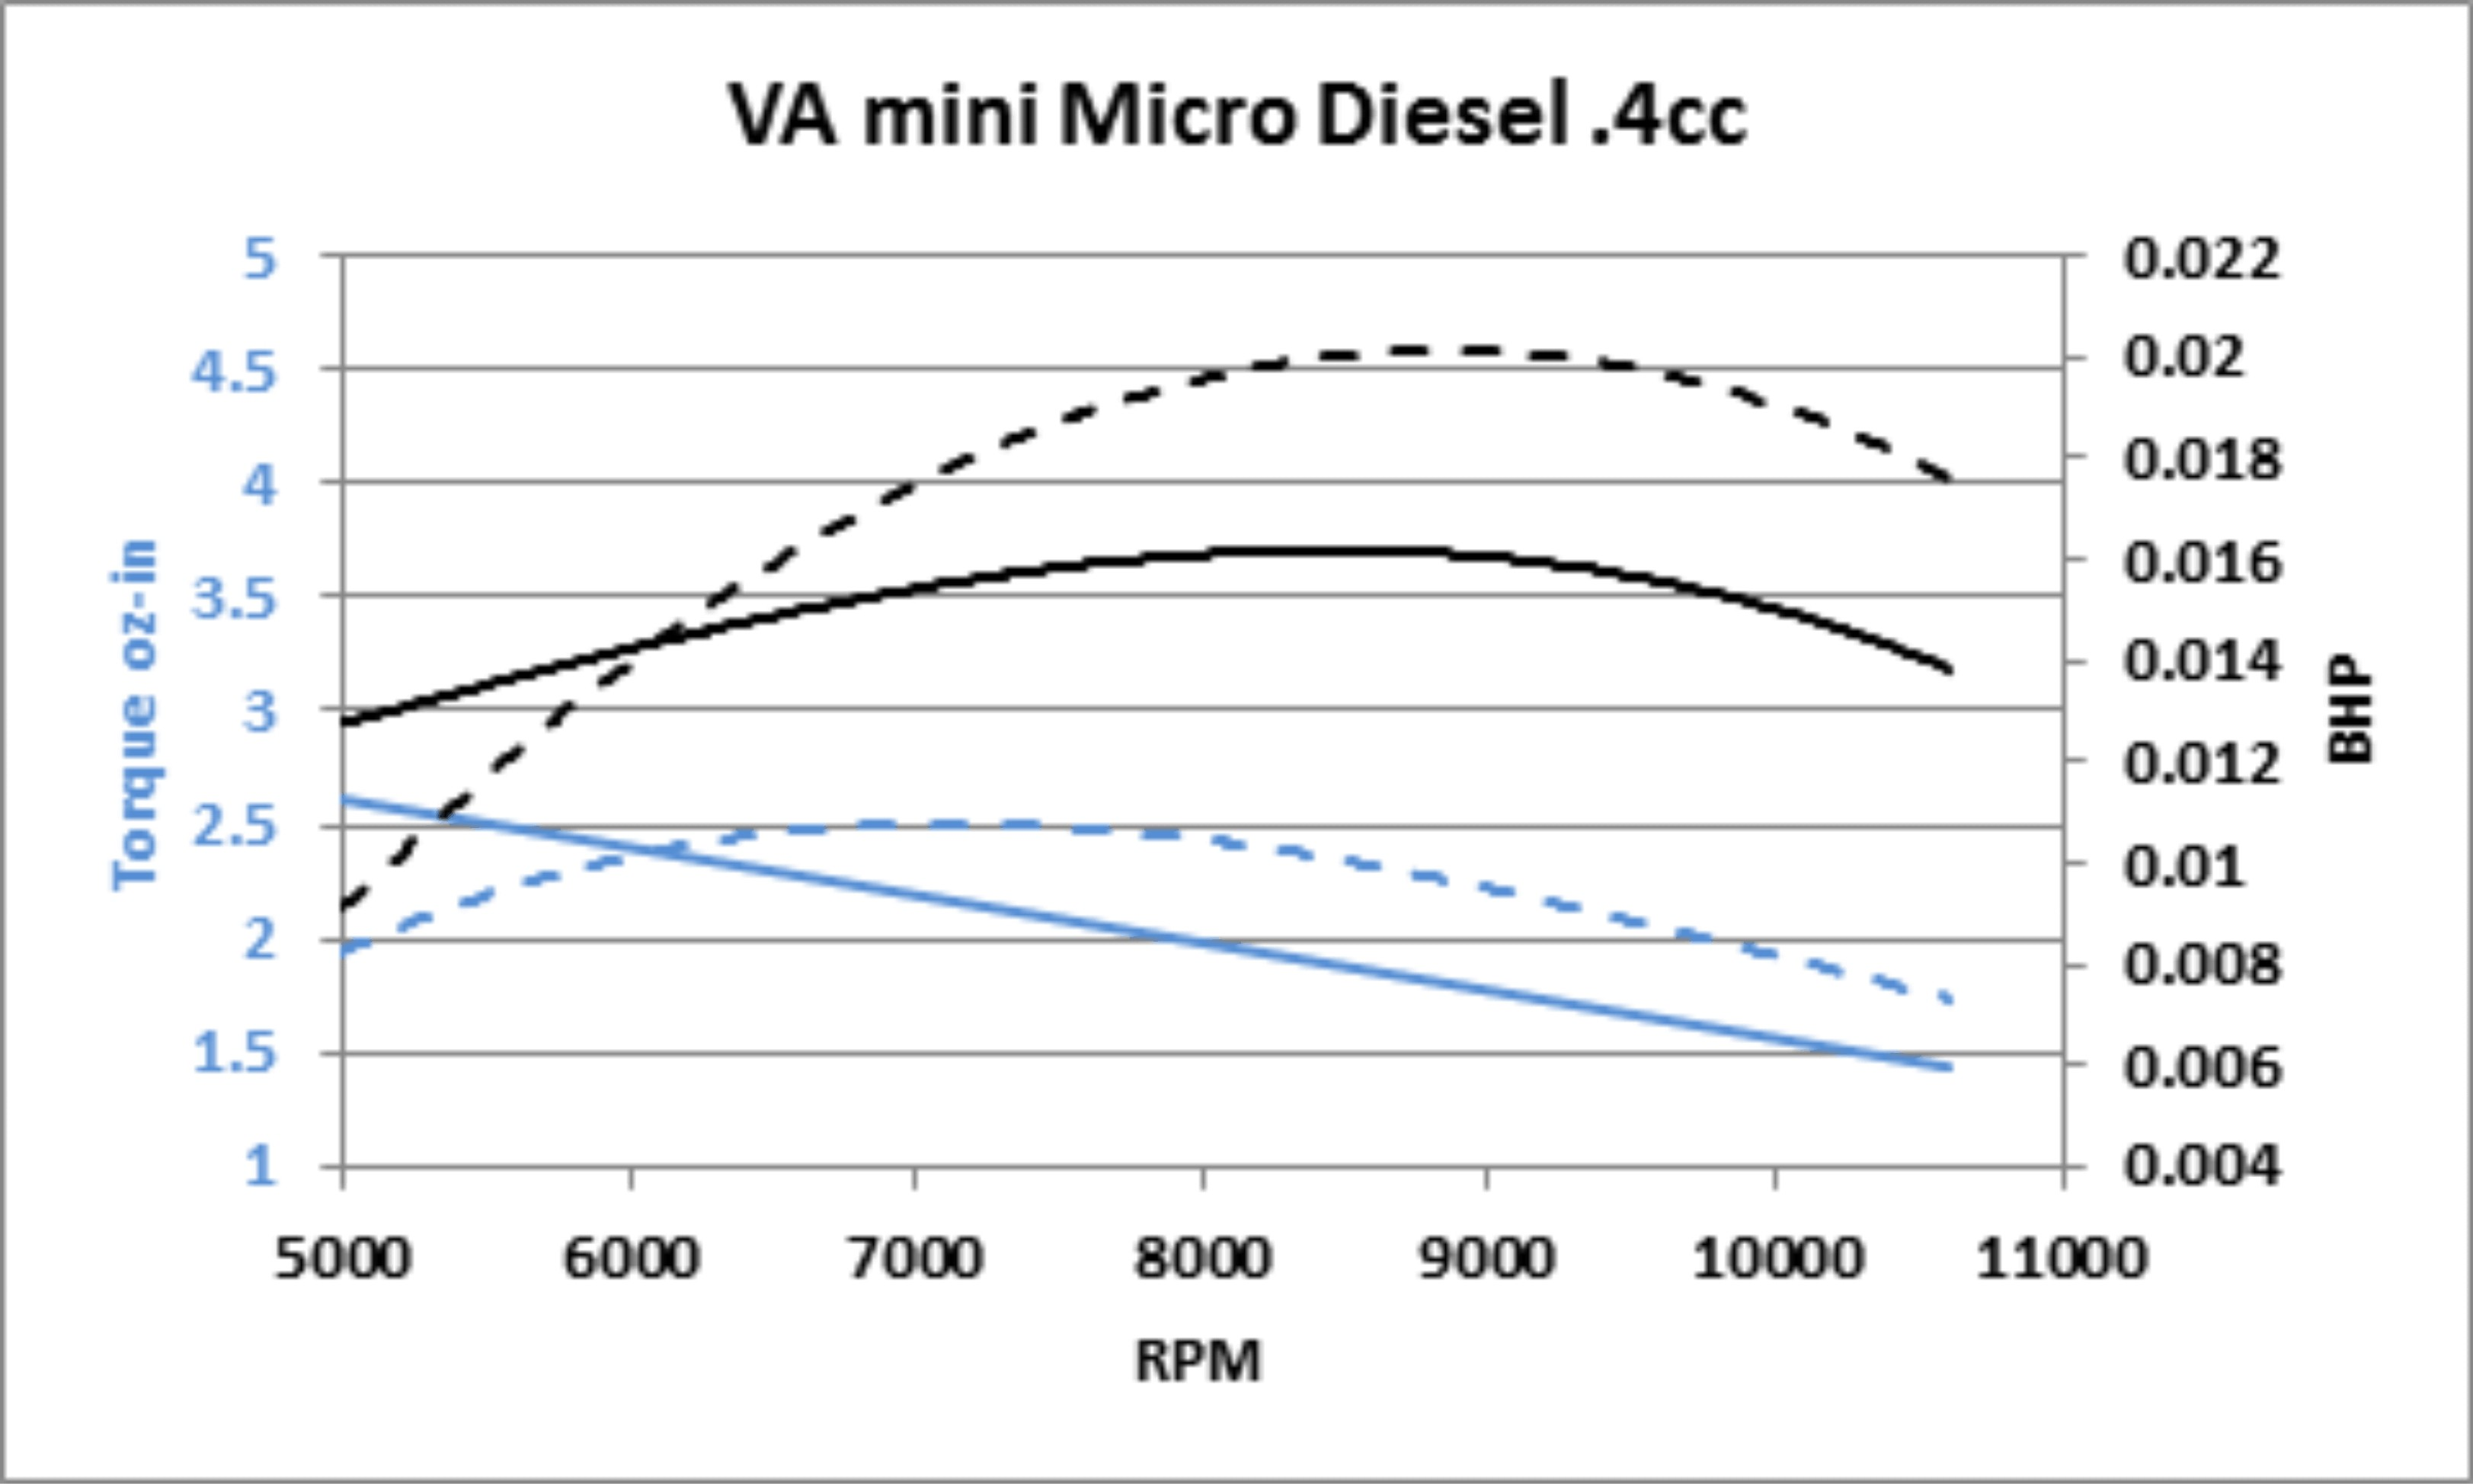 Port Timing Diagram Of Diesel Engine Adriansmodelaeroengines Va Mini Micro Diesel Of Port Timing Diagram Of Diesel Engine